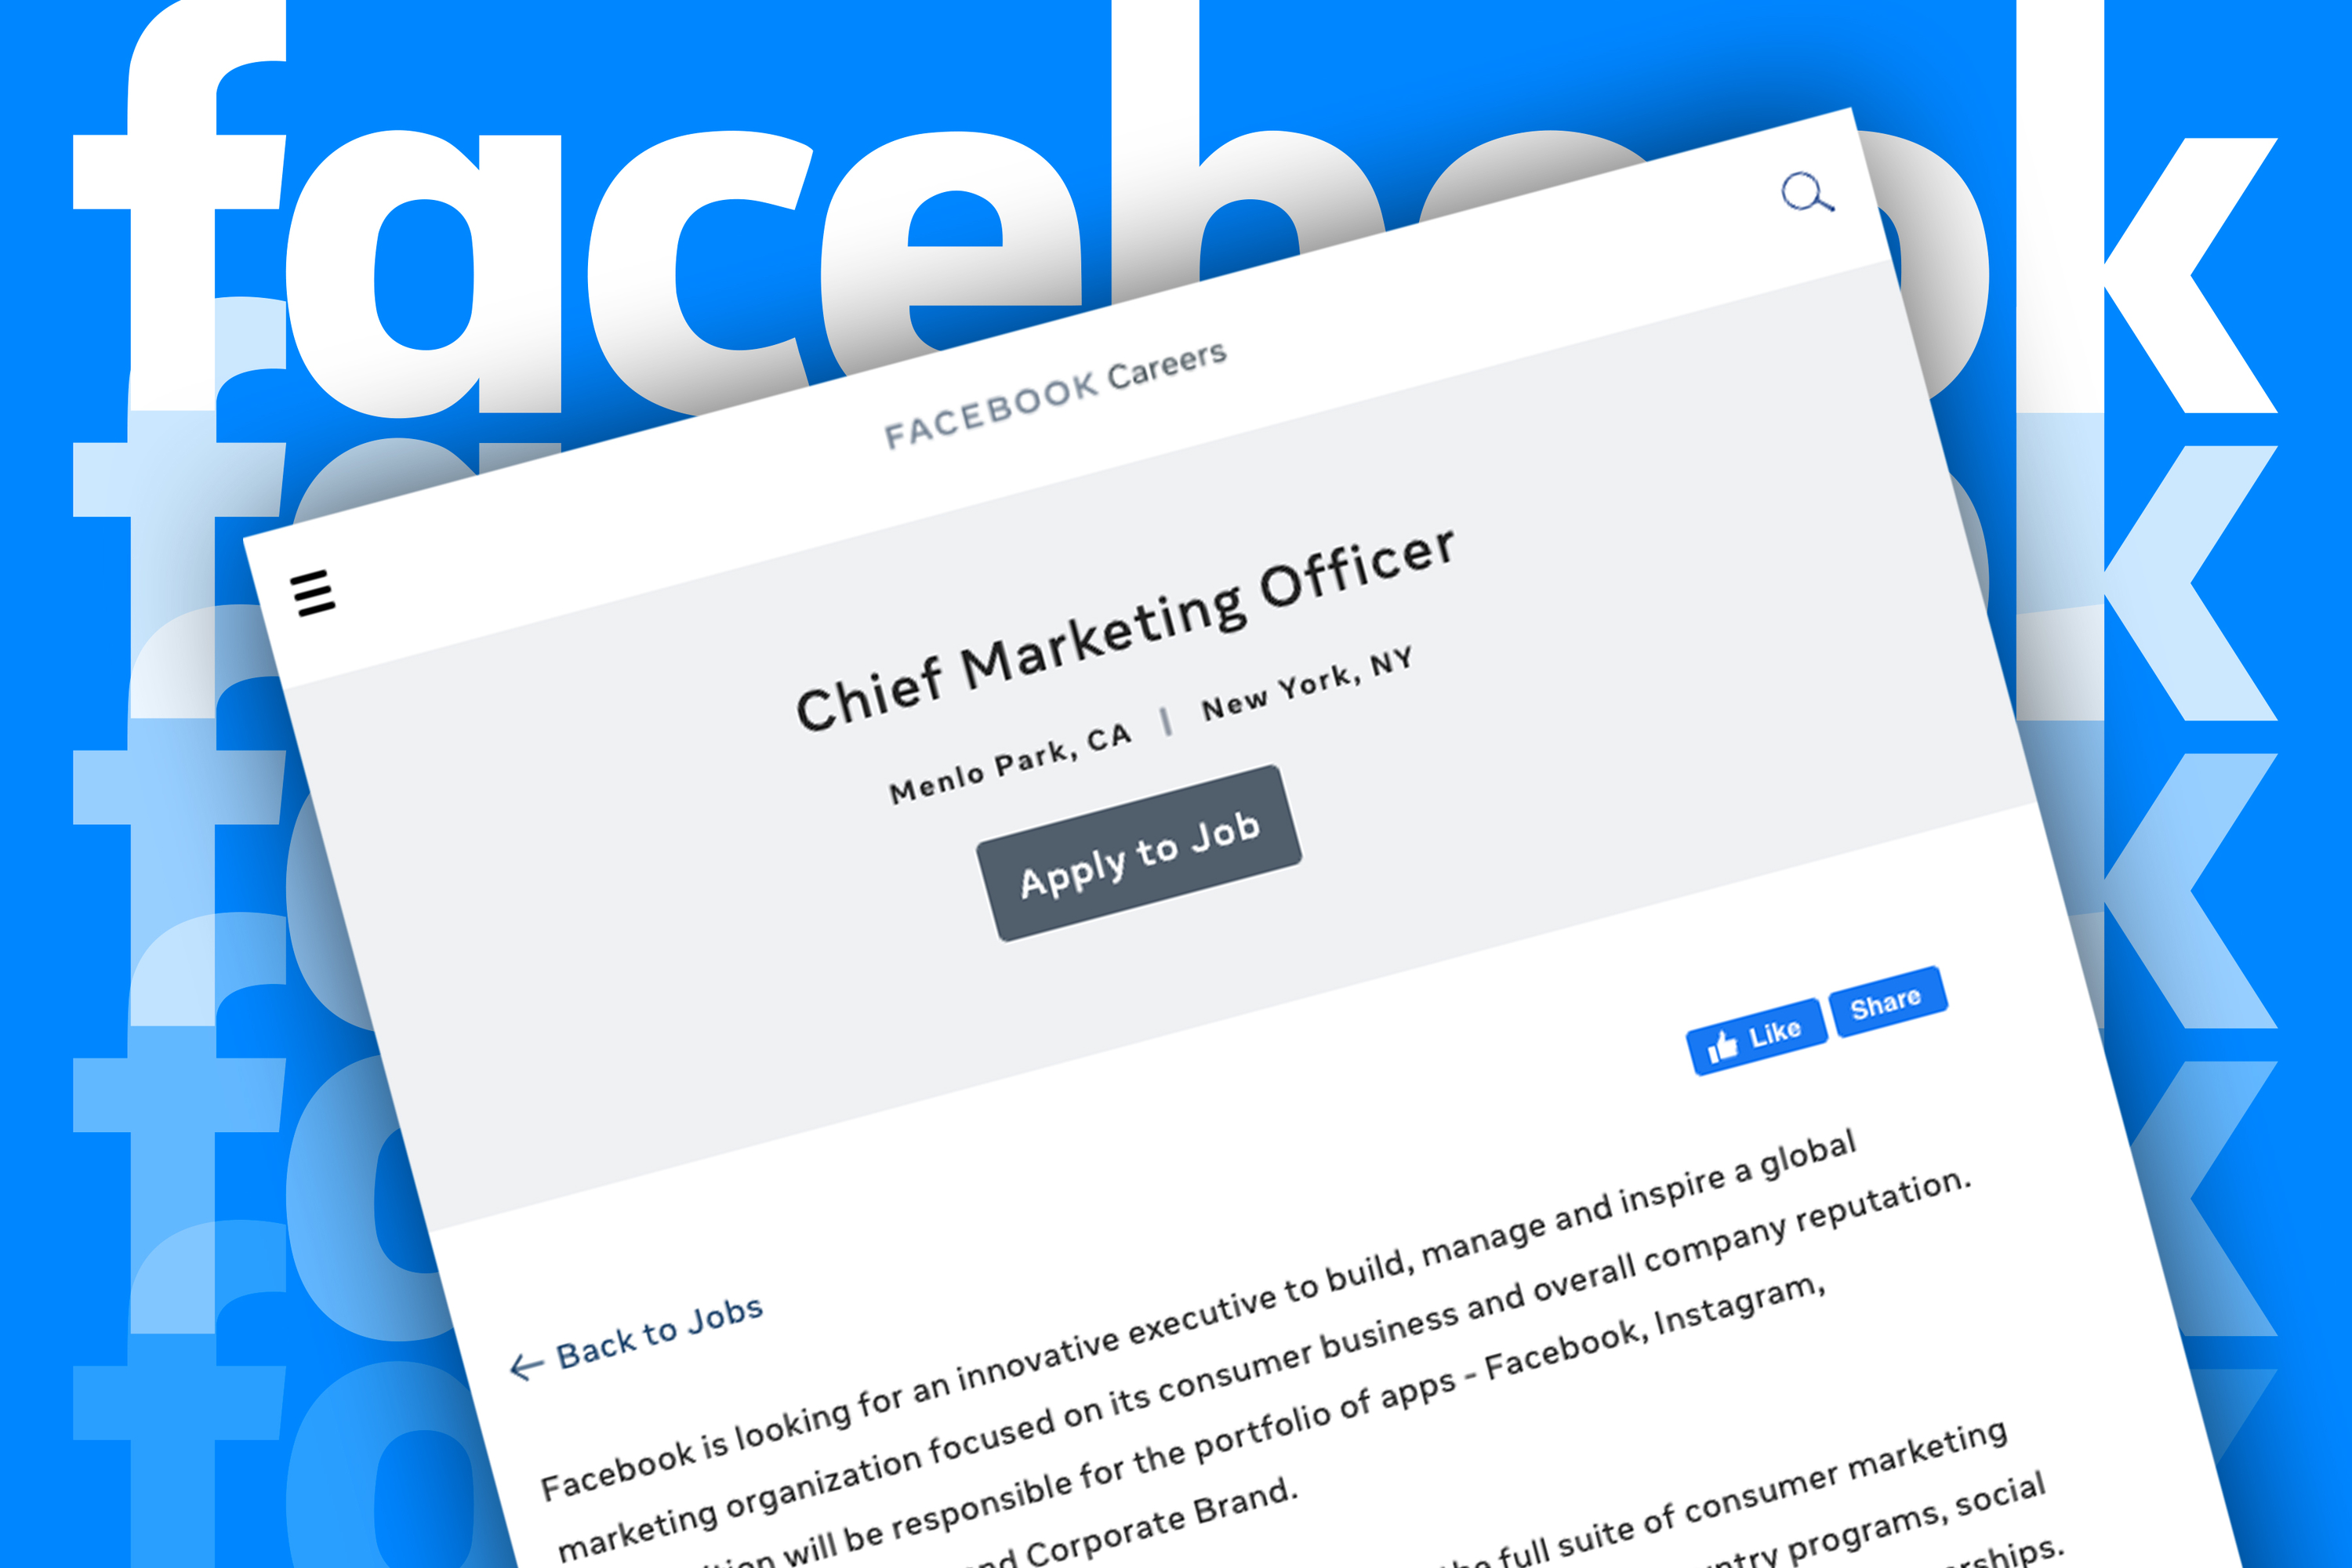 Help Wanted: Facebook posts CMO job opening